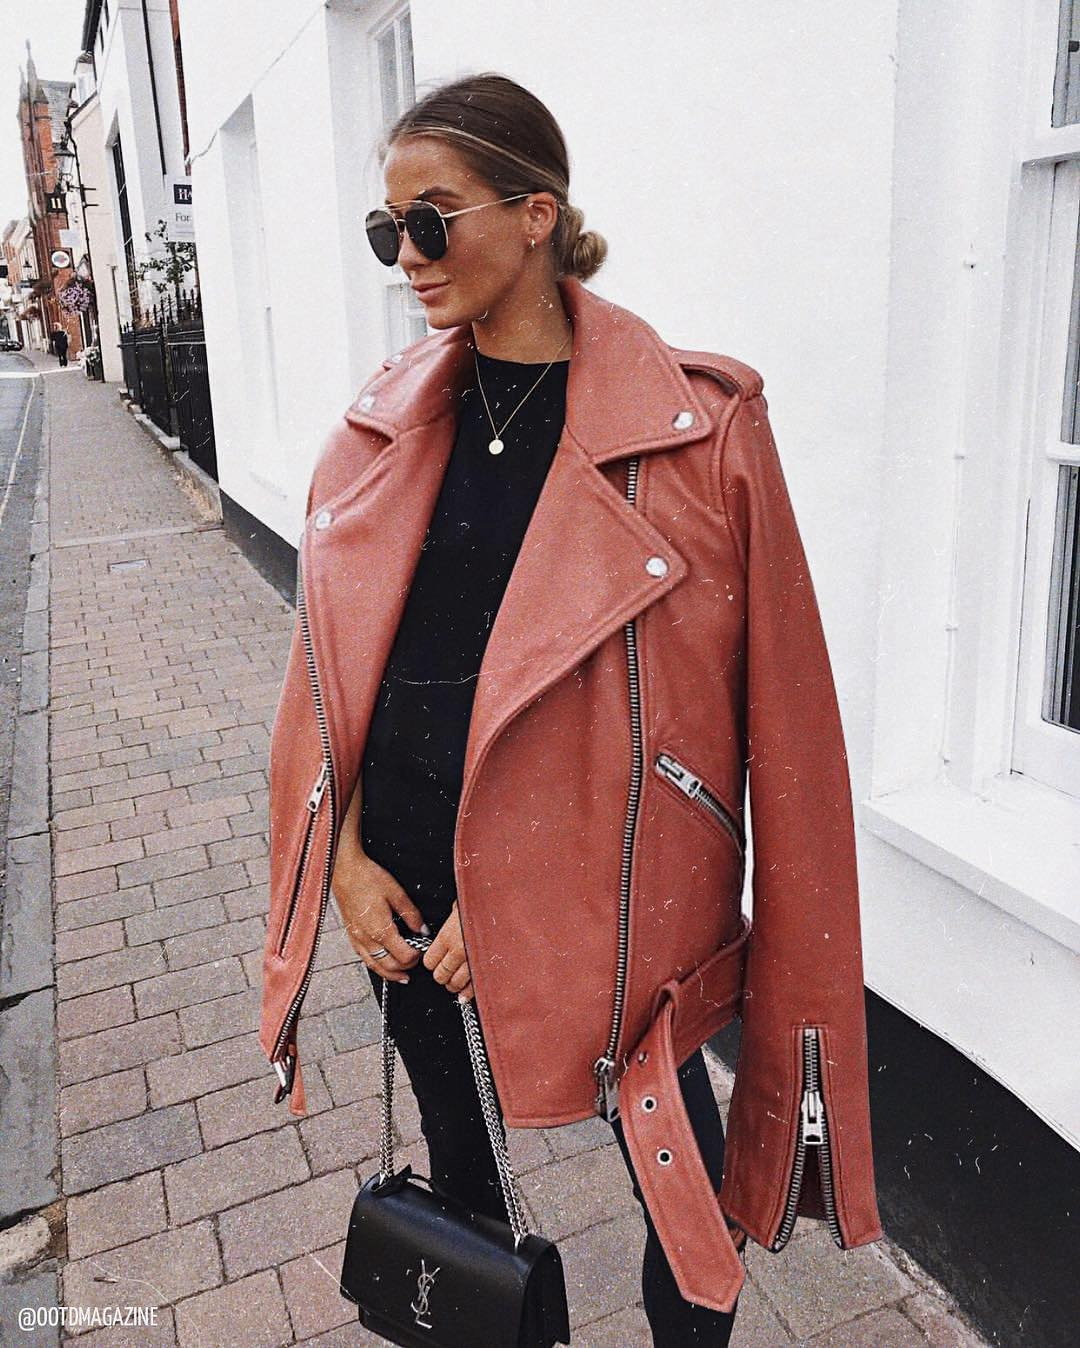 Oversized leather jacket for fall 2021